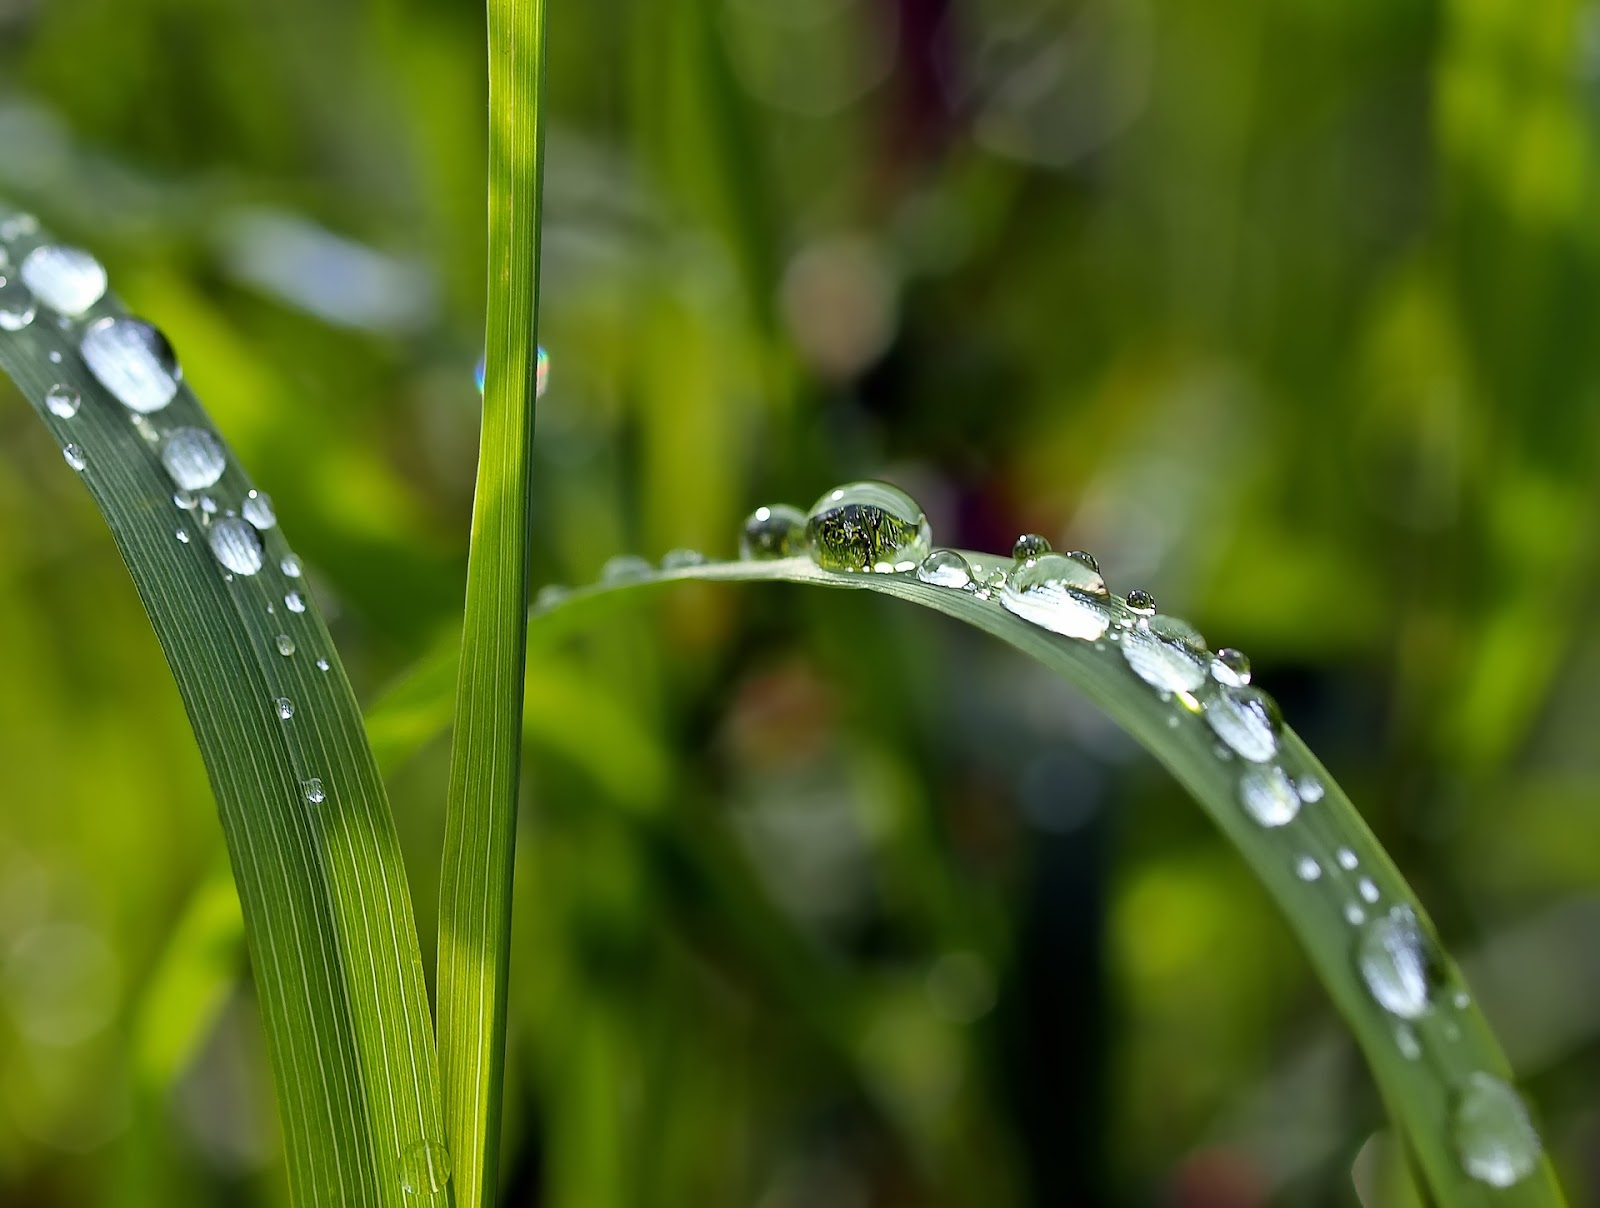 Water droplets on plant leaves